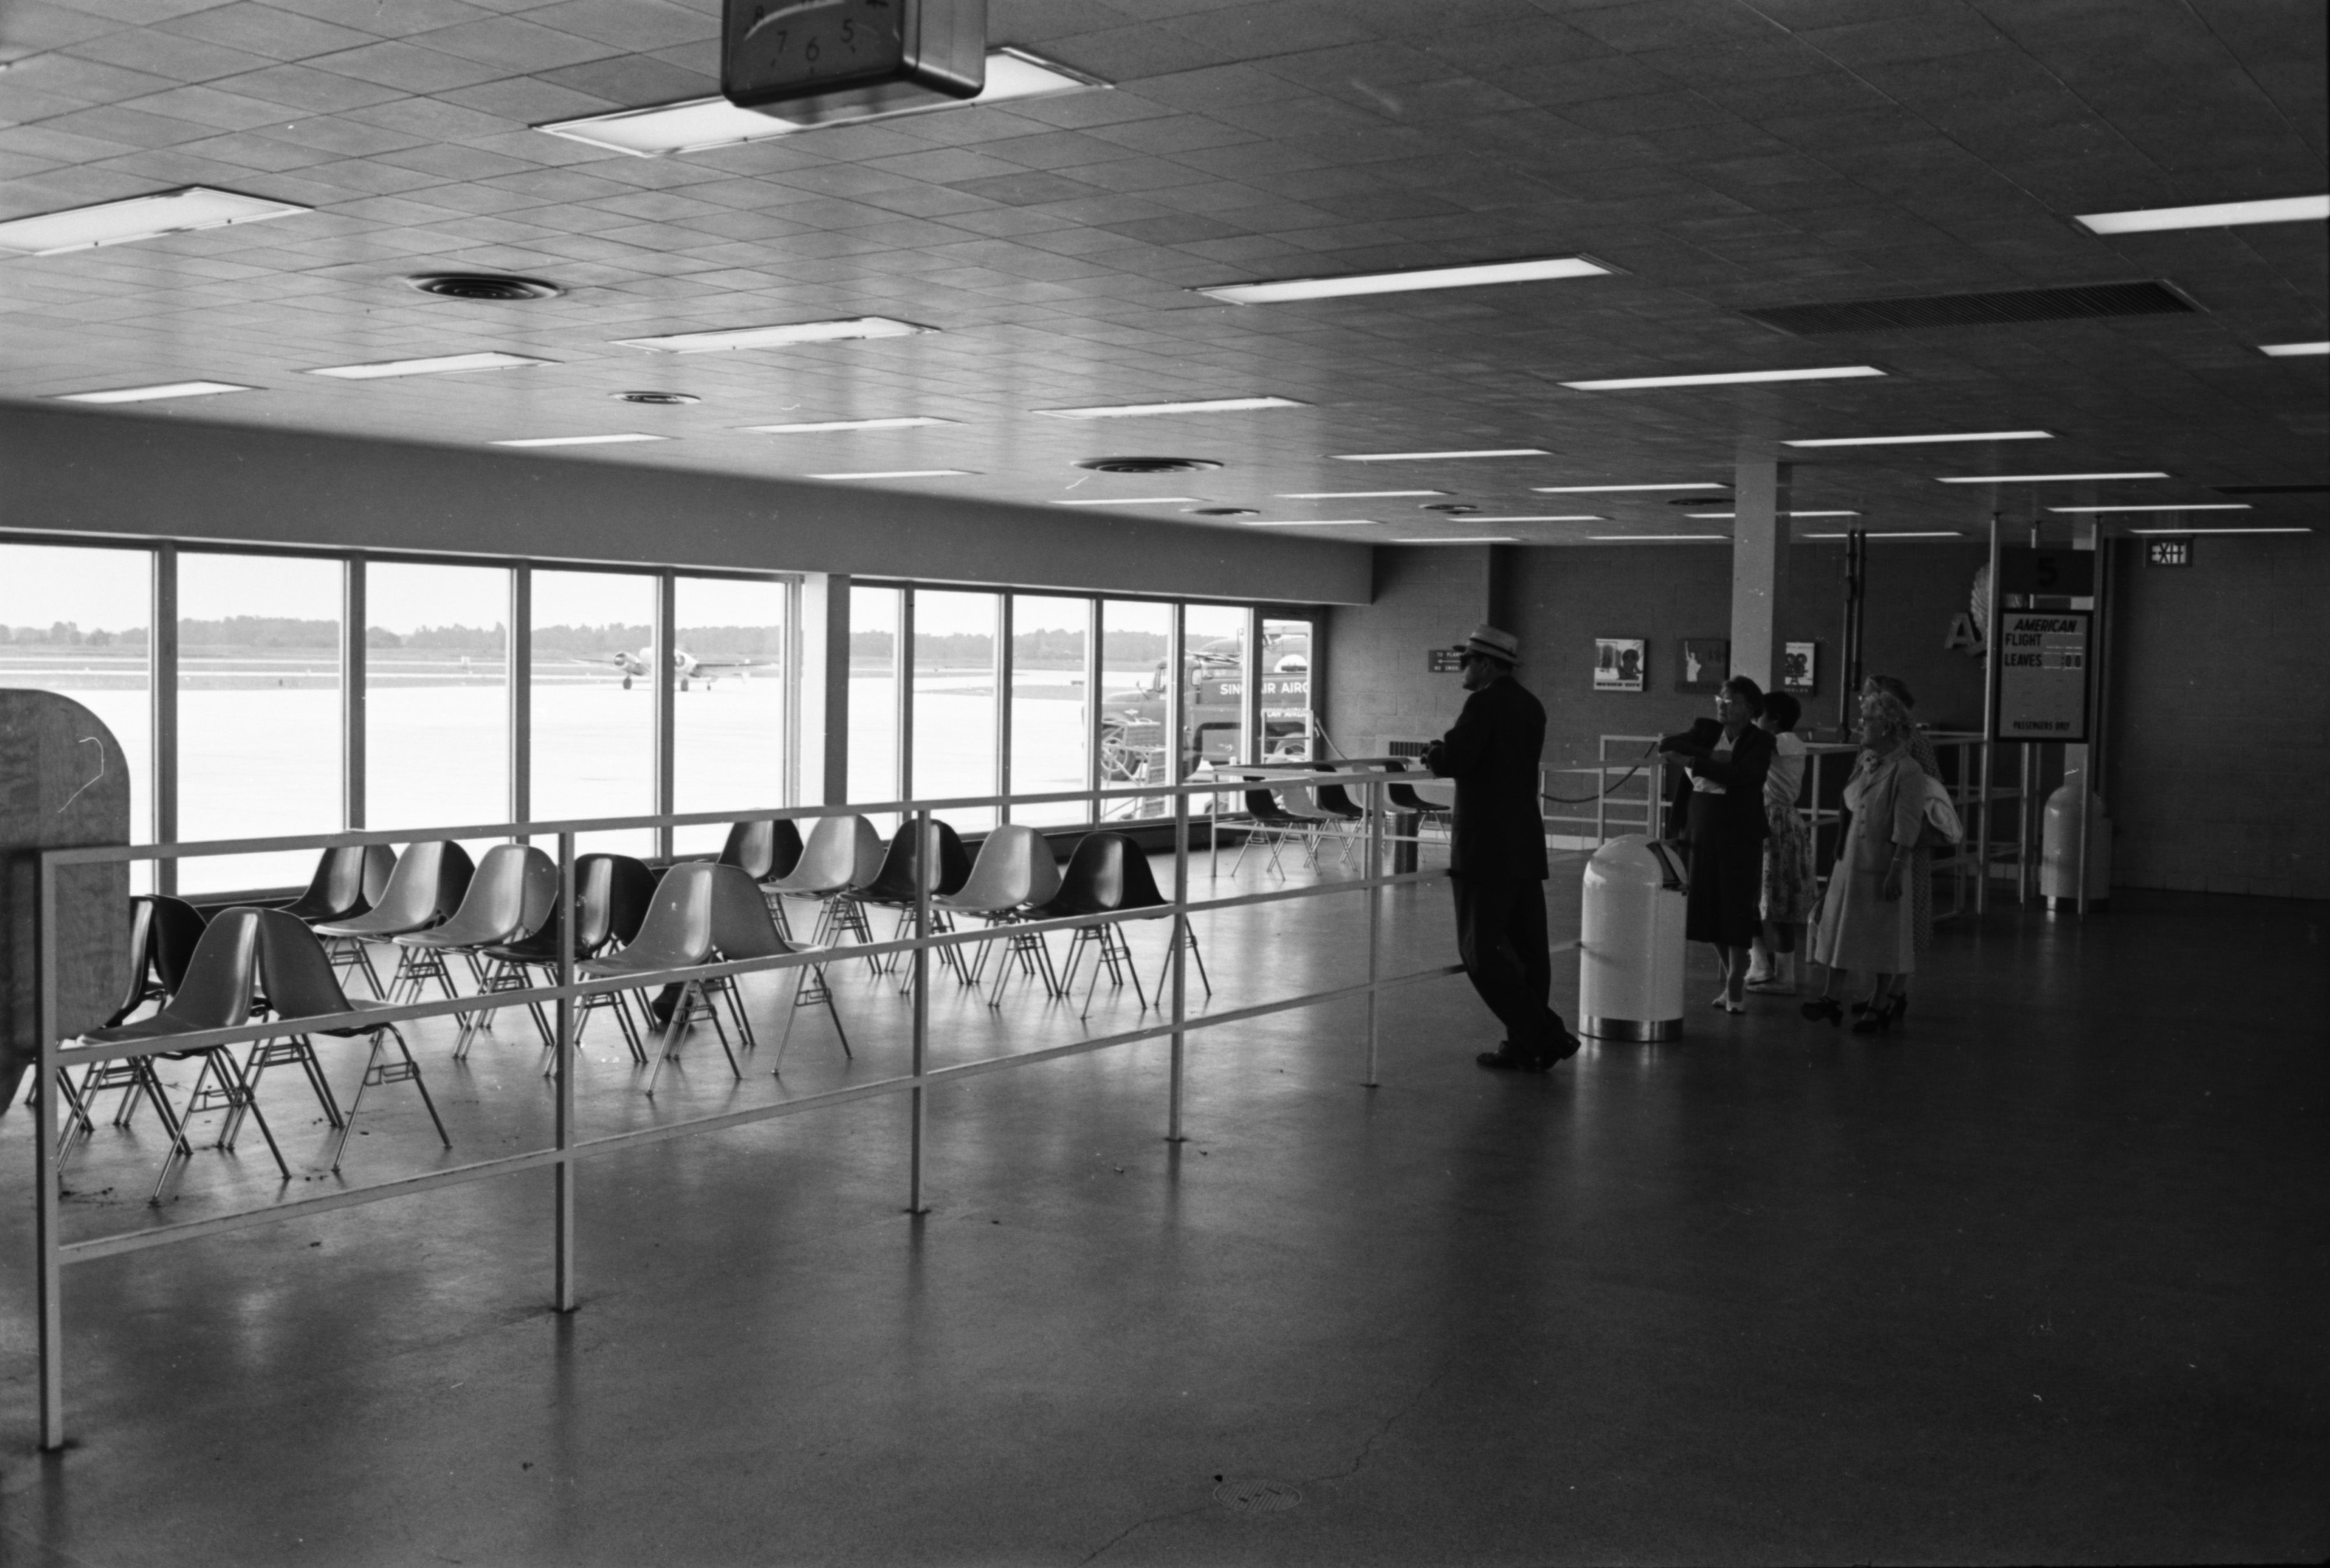 Interior showing partial renovation and expansion of Detroit Metropolitan Airport, August 1959 image